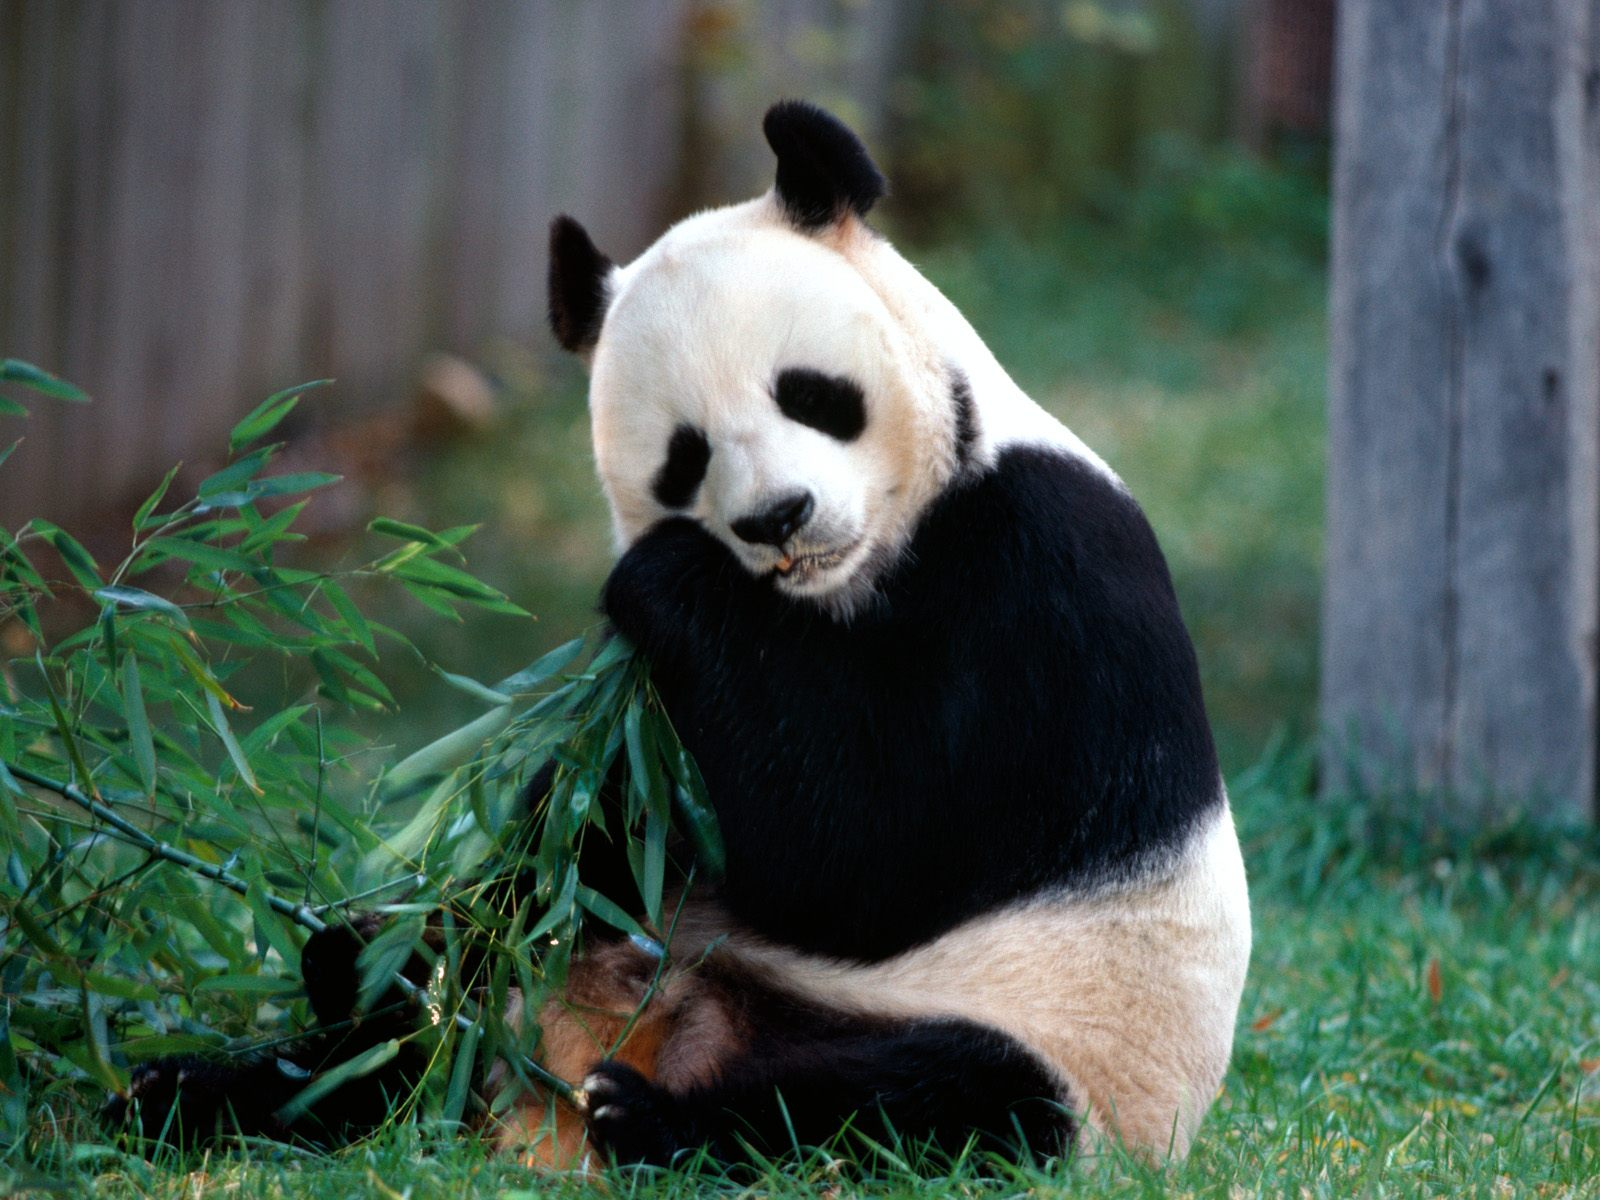 snack time panda bear pictures